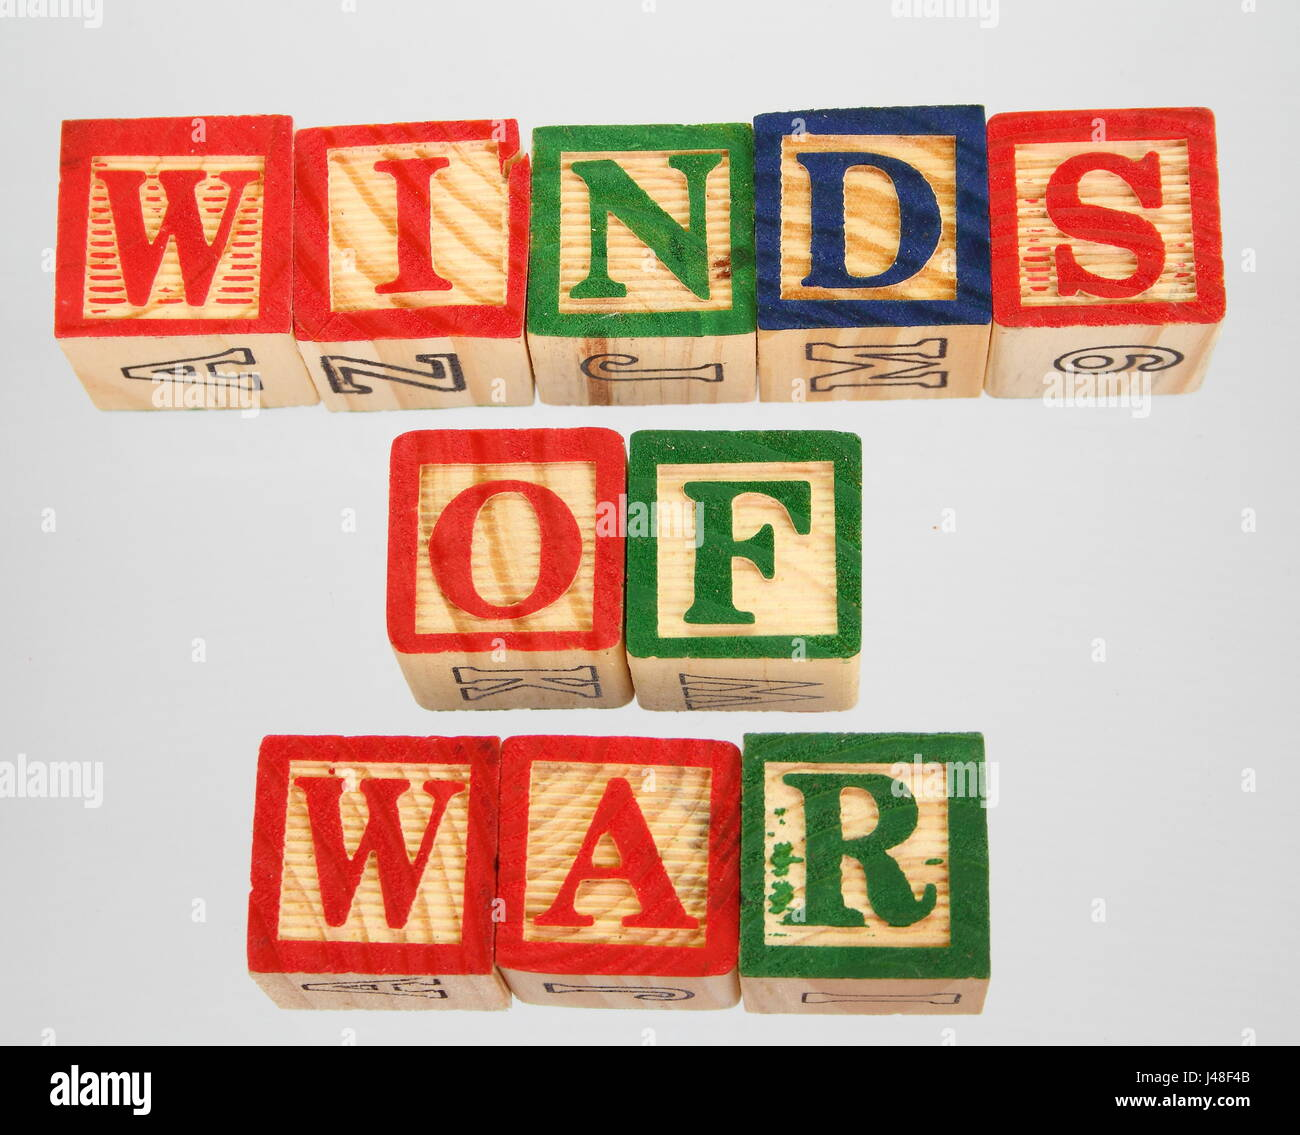 The phrase winds of war displayed visually on a white background using colorful wooden blocks Stock Photo